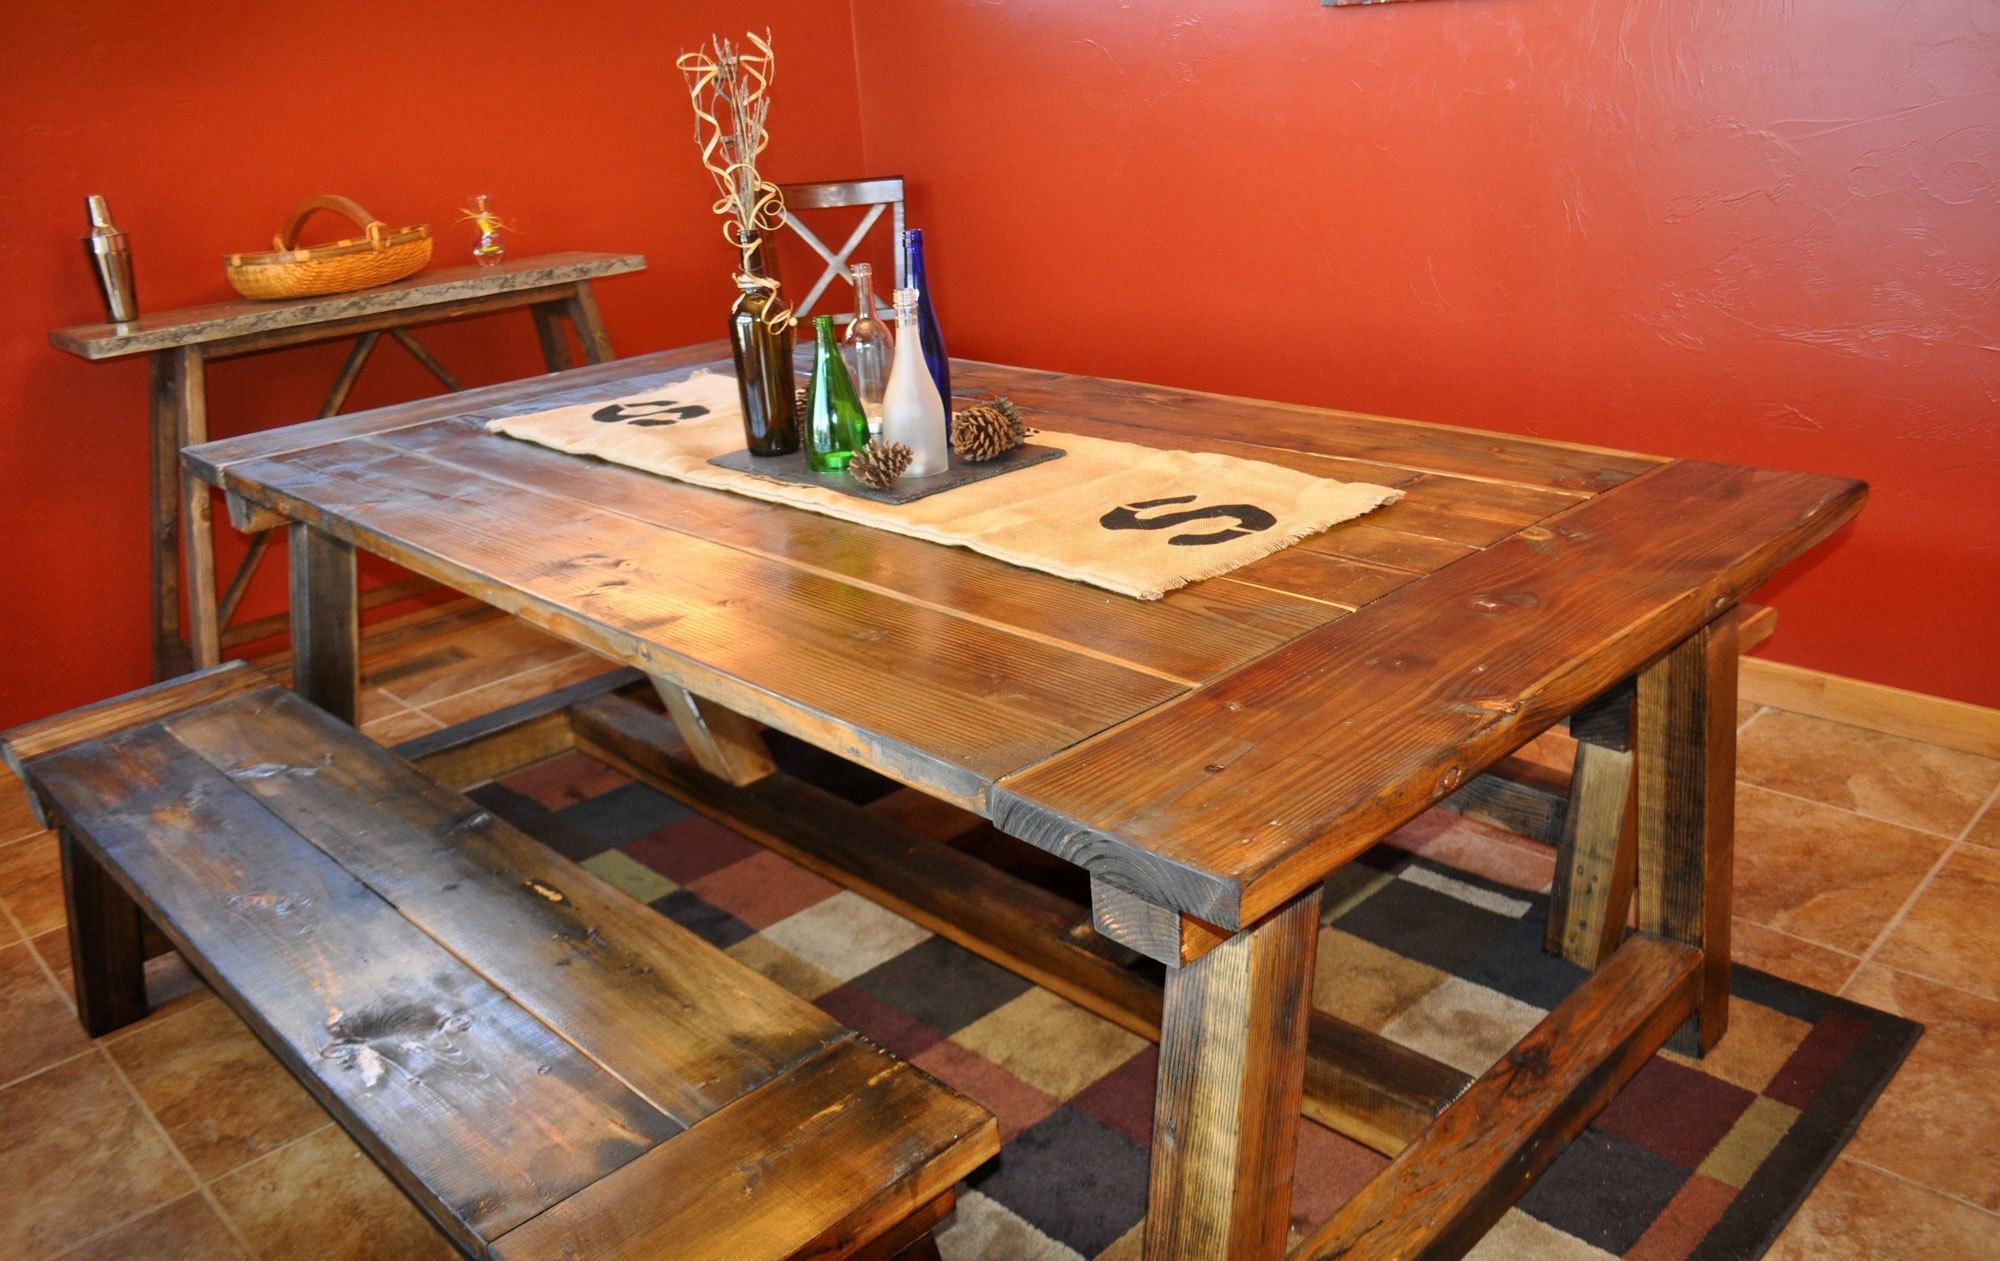 How to build a farmhouse table how to build a 44 farmhouse table malvernweather Image collections